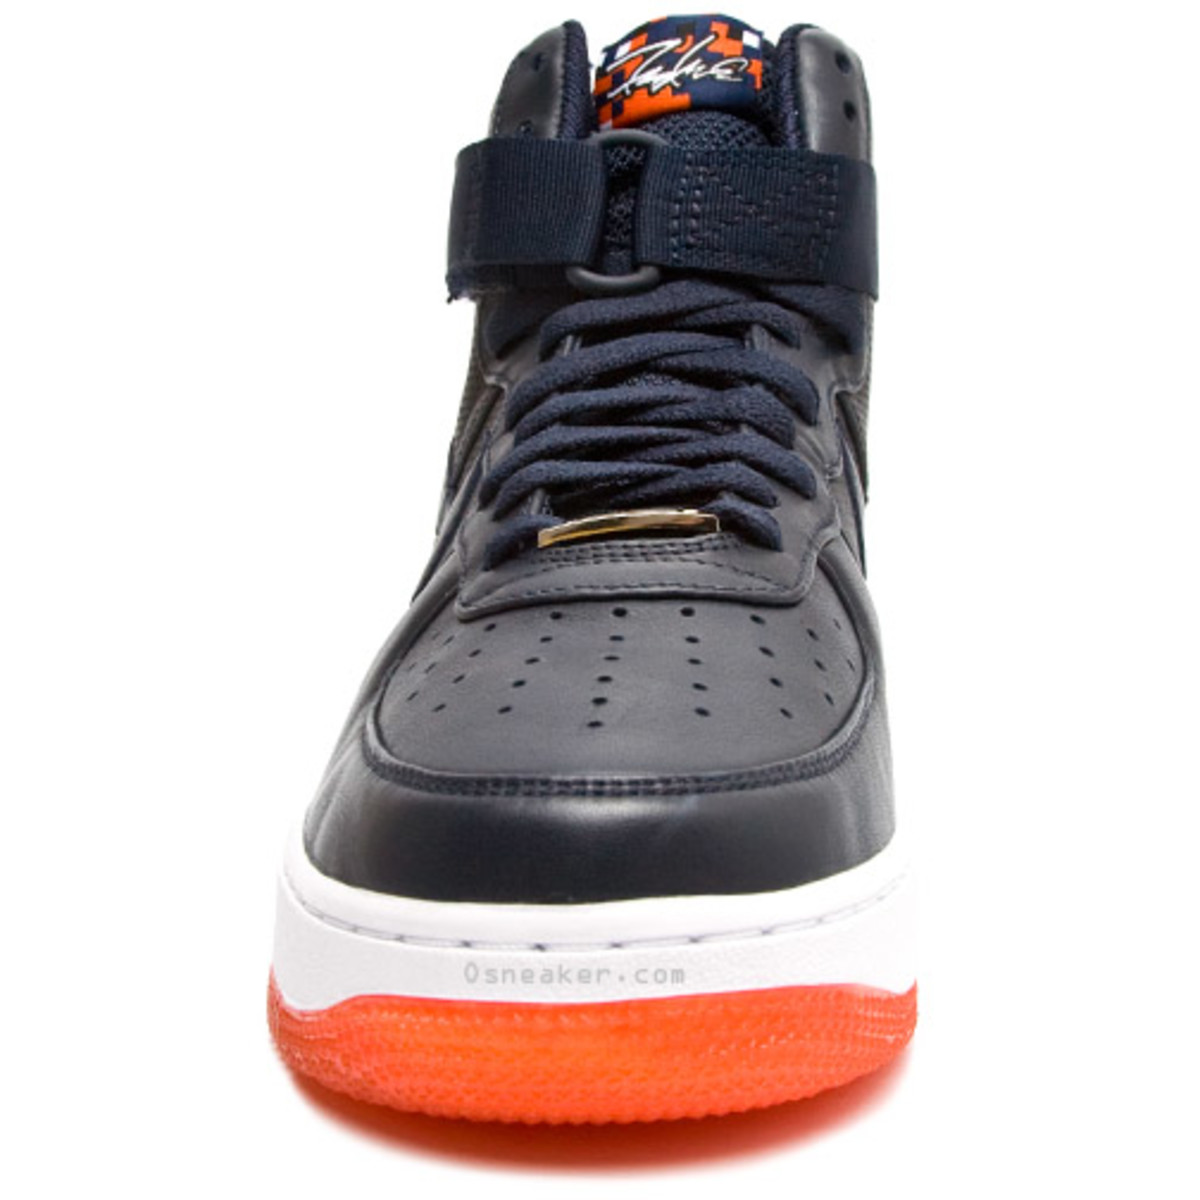 nike-x-futura-air-force-1-high-premium-navy-2